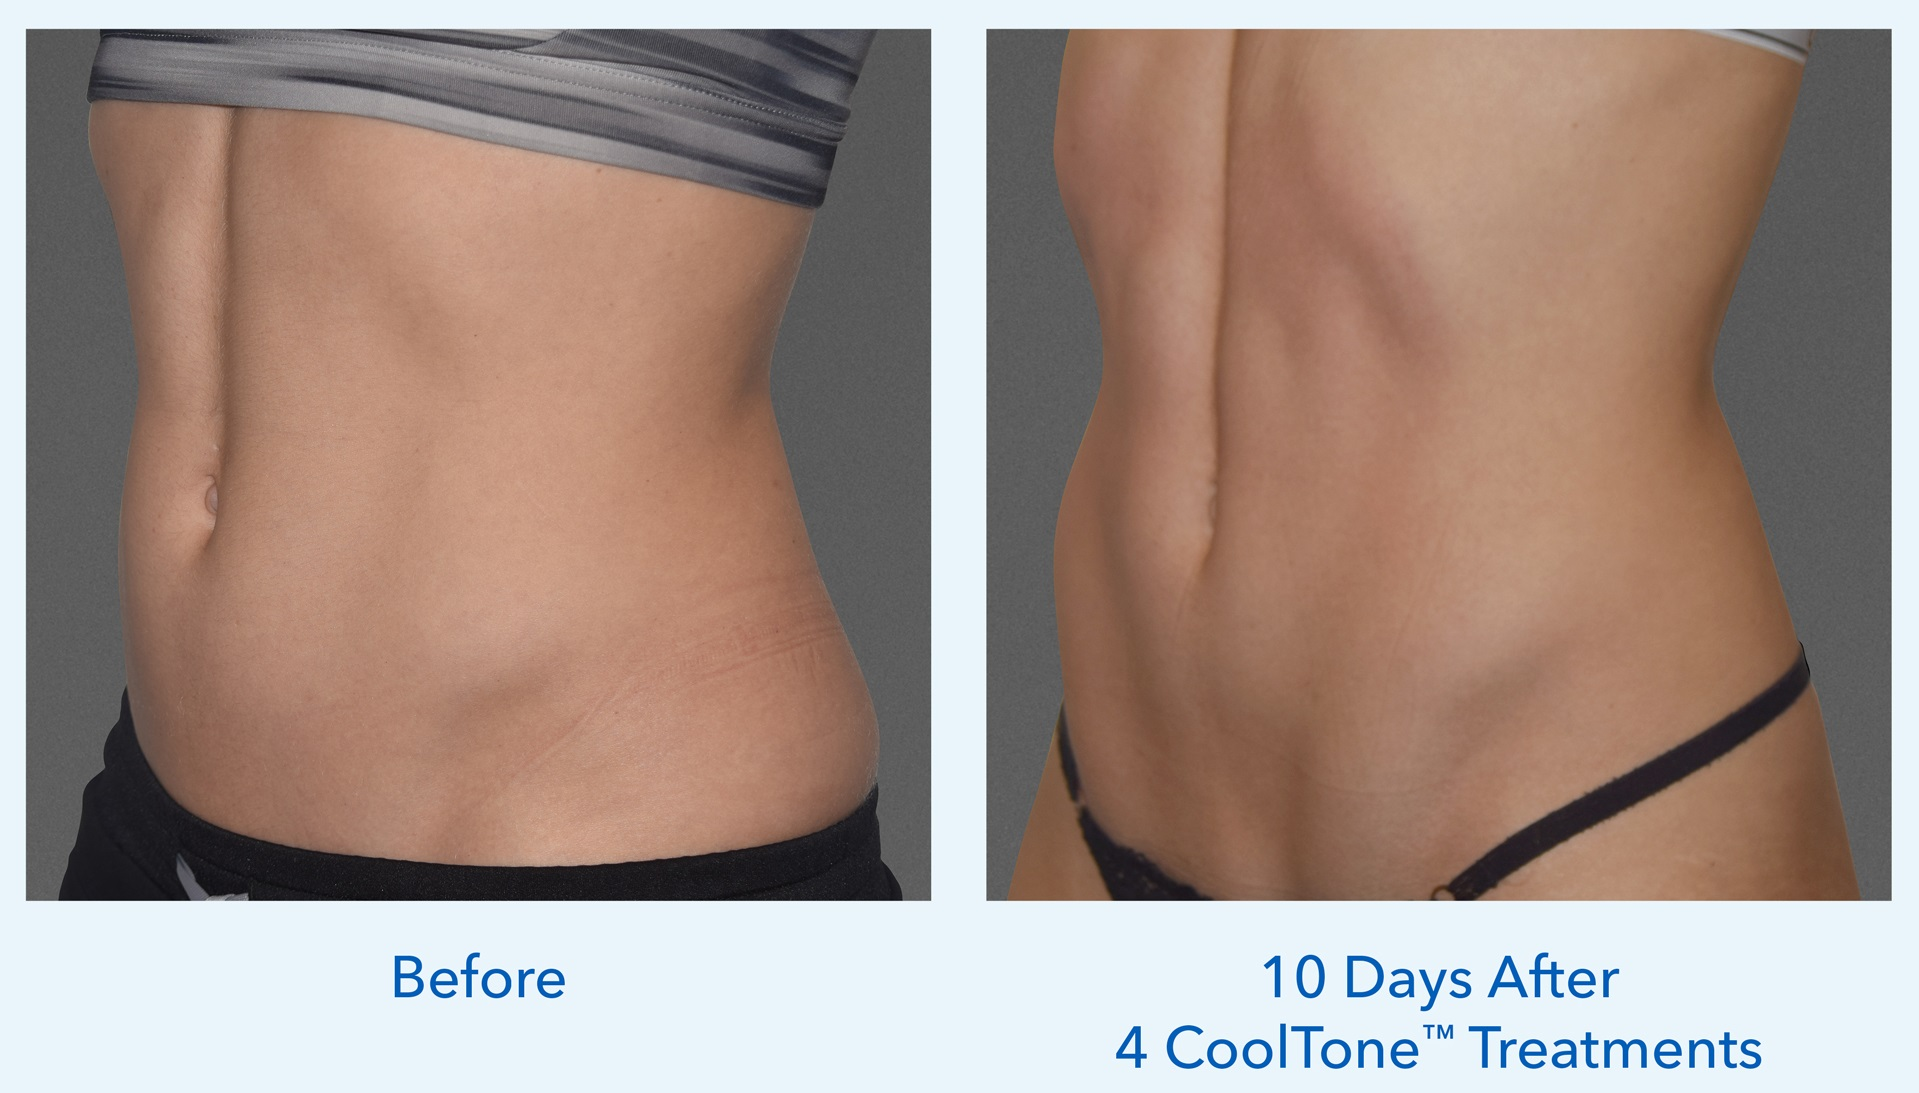 CoolTone woman's abdomen before and after